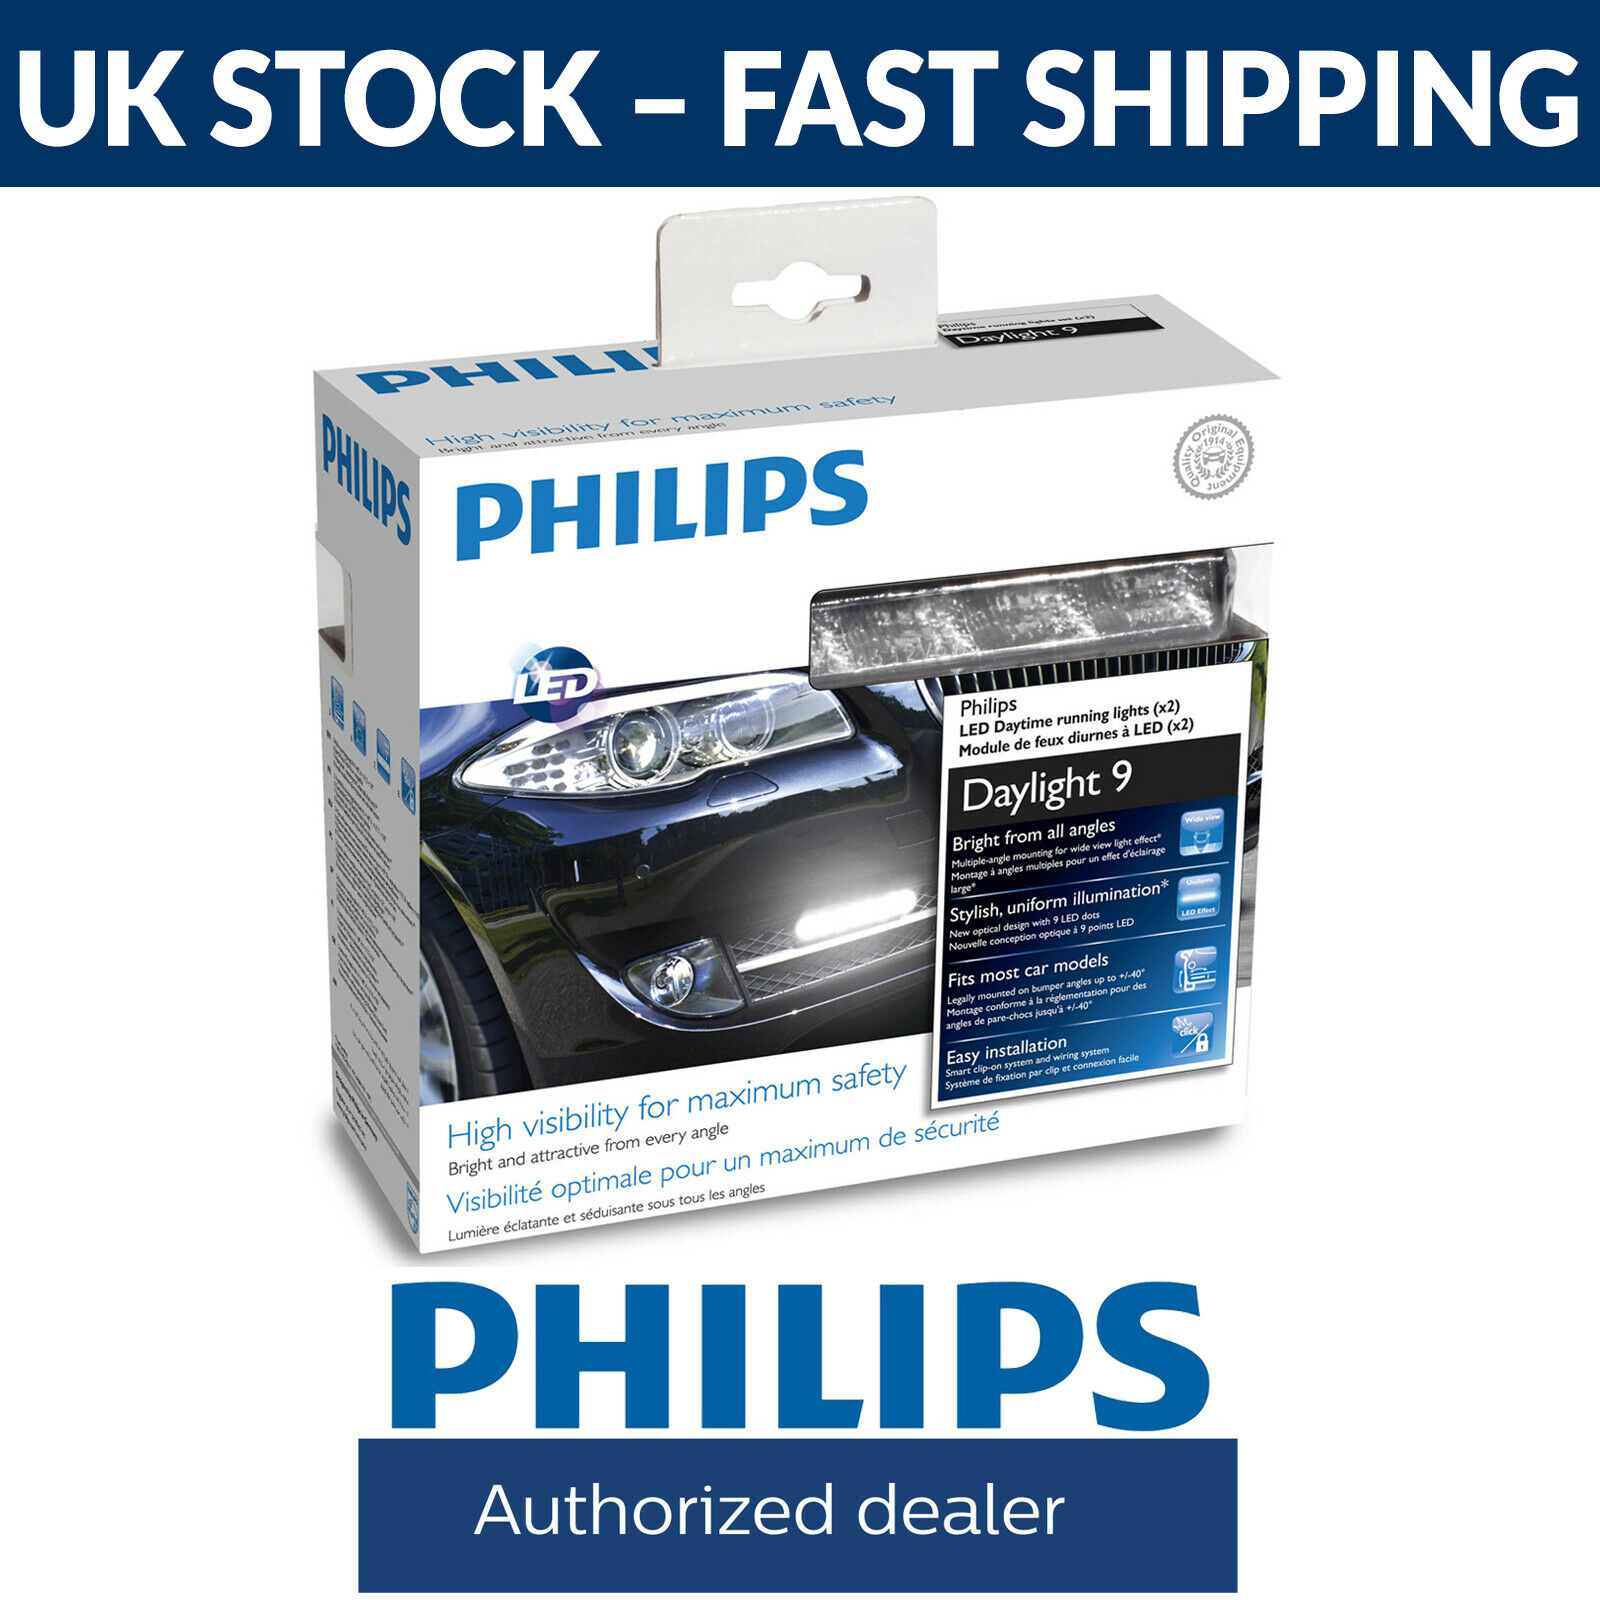 Philips Daylight 9 Drl Daytime Running Light System 12831wledx1 Wiring Lights Drls On A Caravan 1 Of 3free Shipping